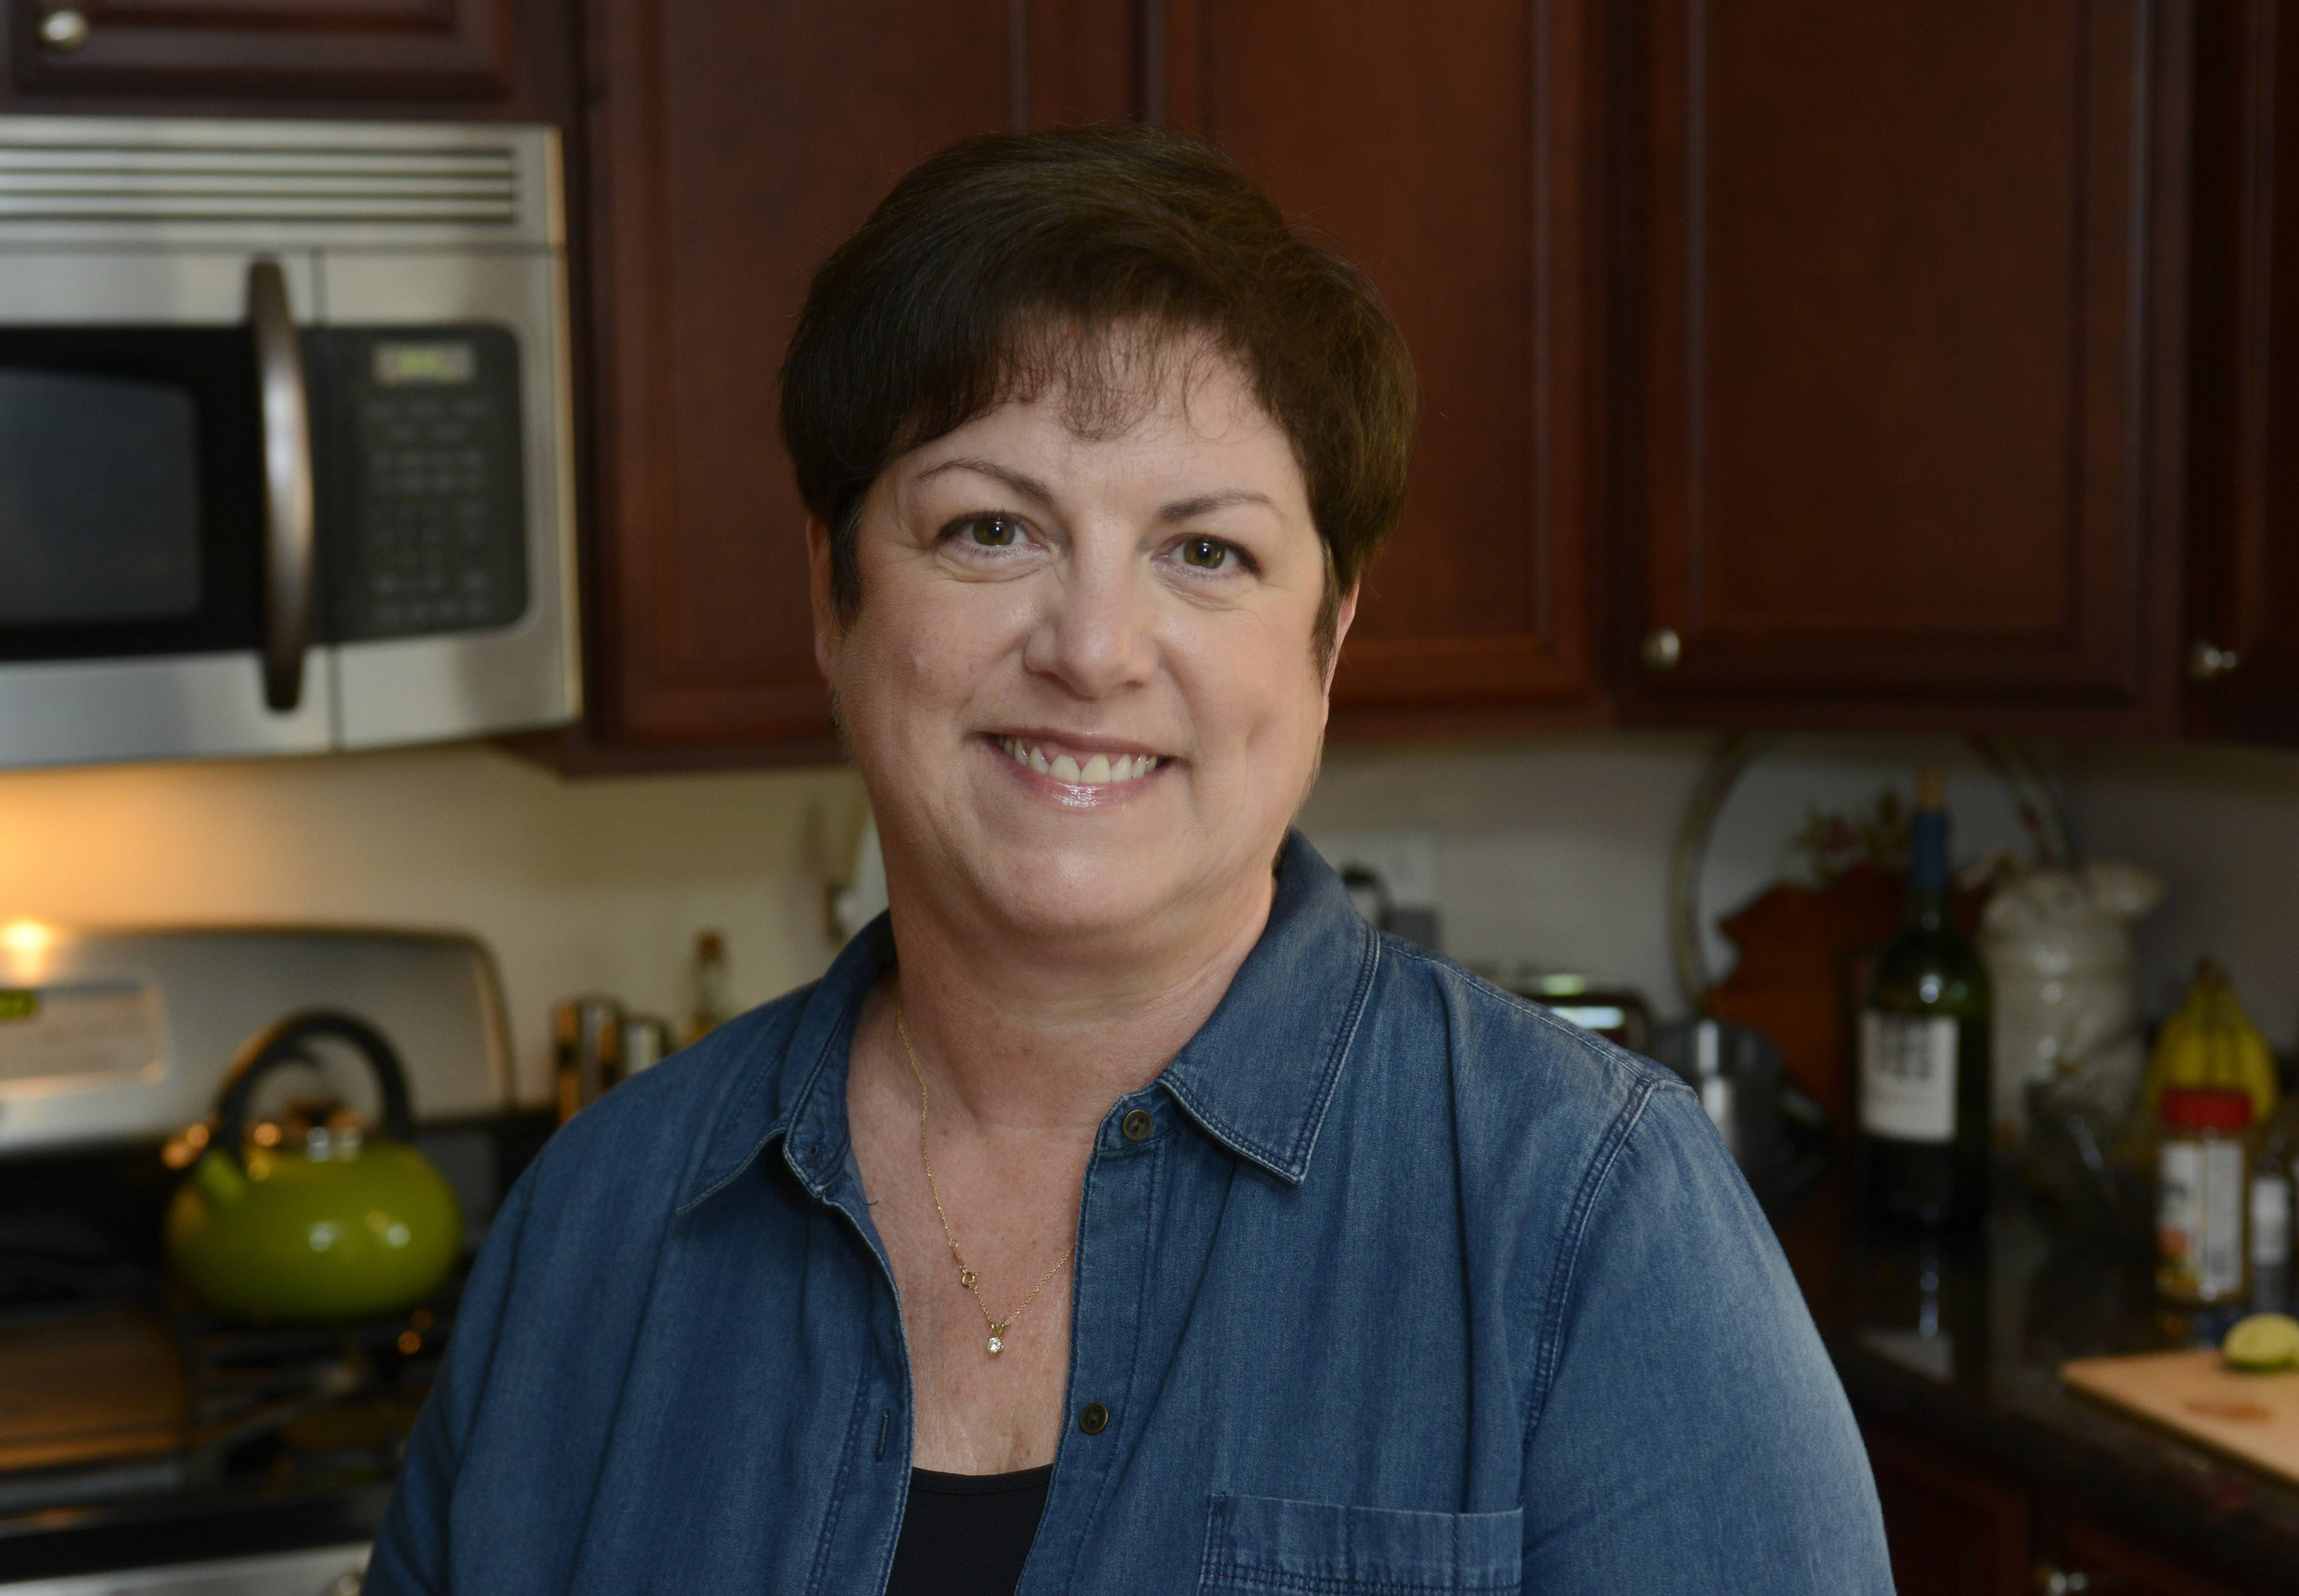 Sue Cortesi has learned how to stretch the family meal budget still load the dinner table with bold flavors.